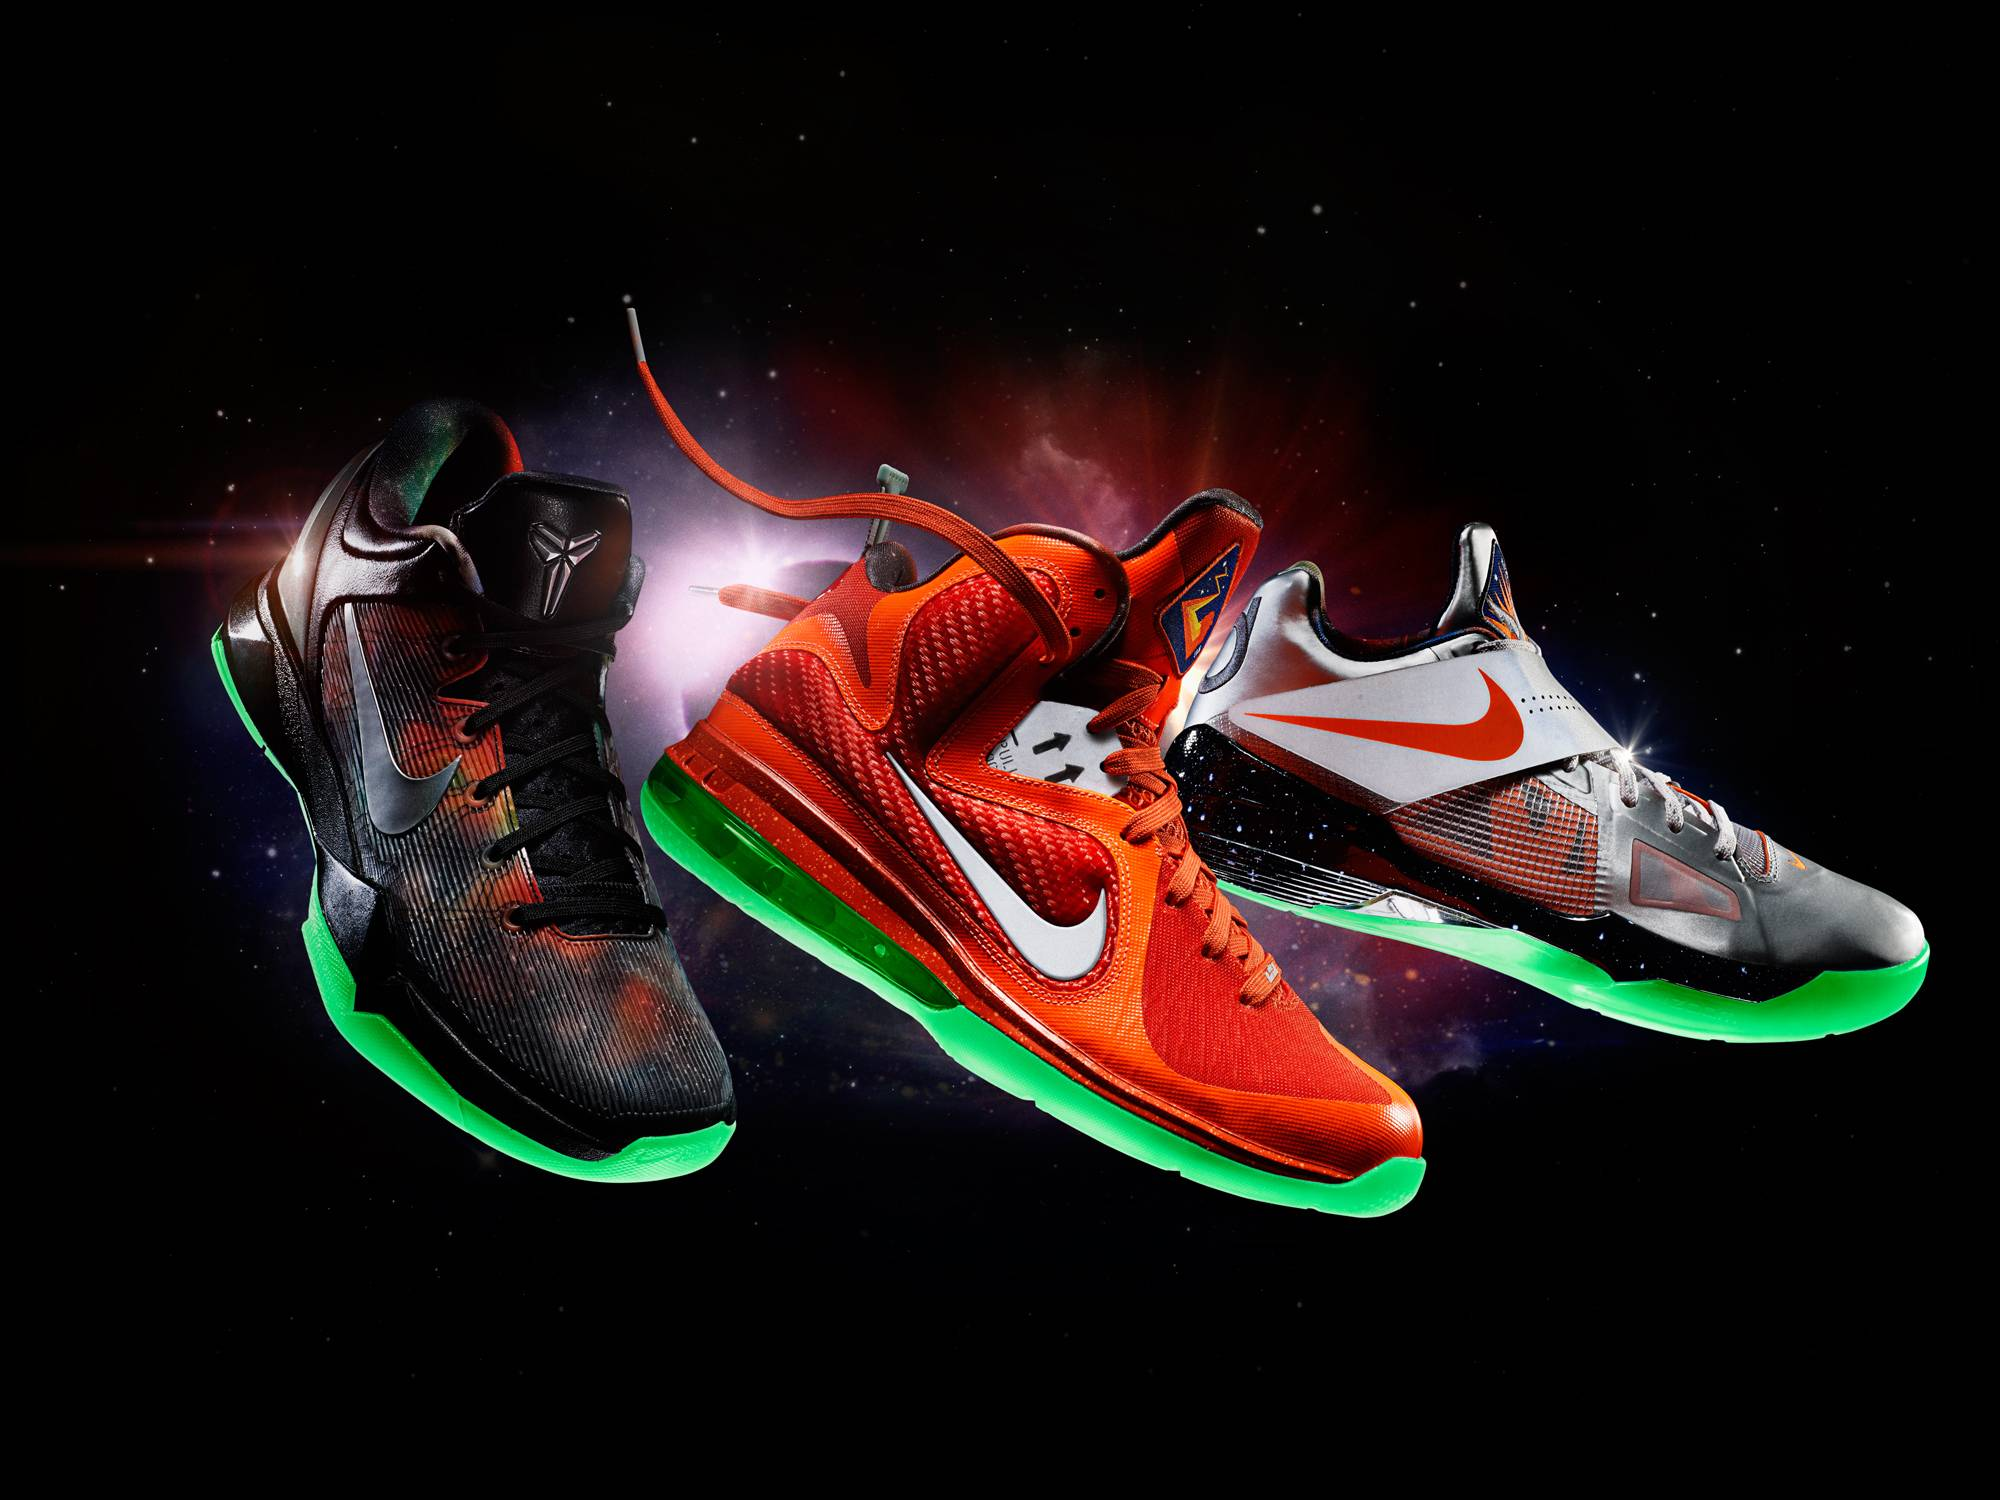 Sport Wallpaper Nike: Nike Shoes Wallpapers